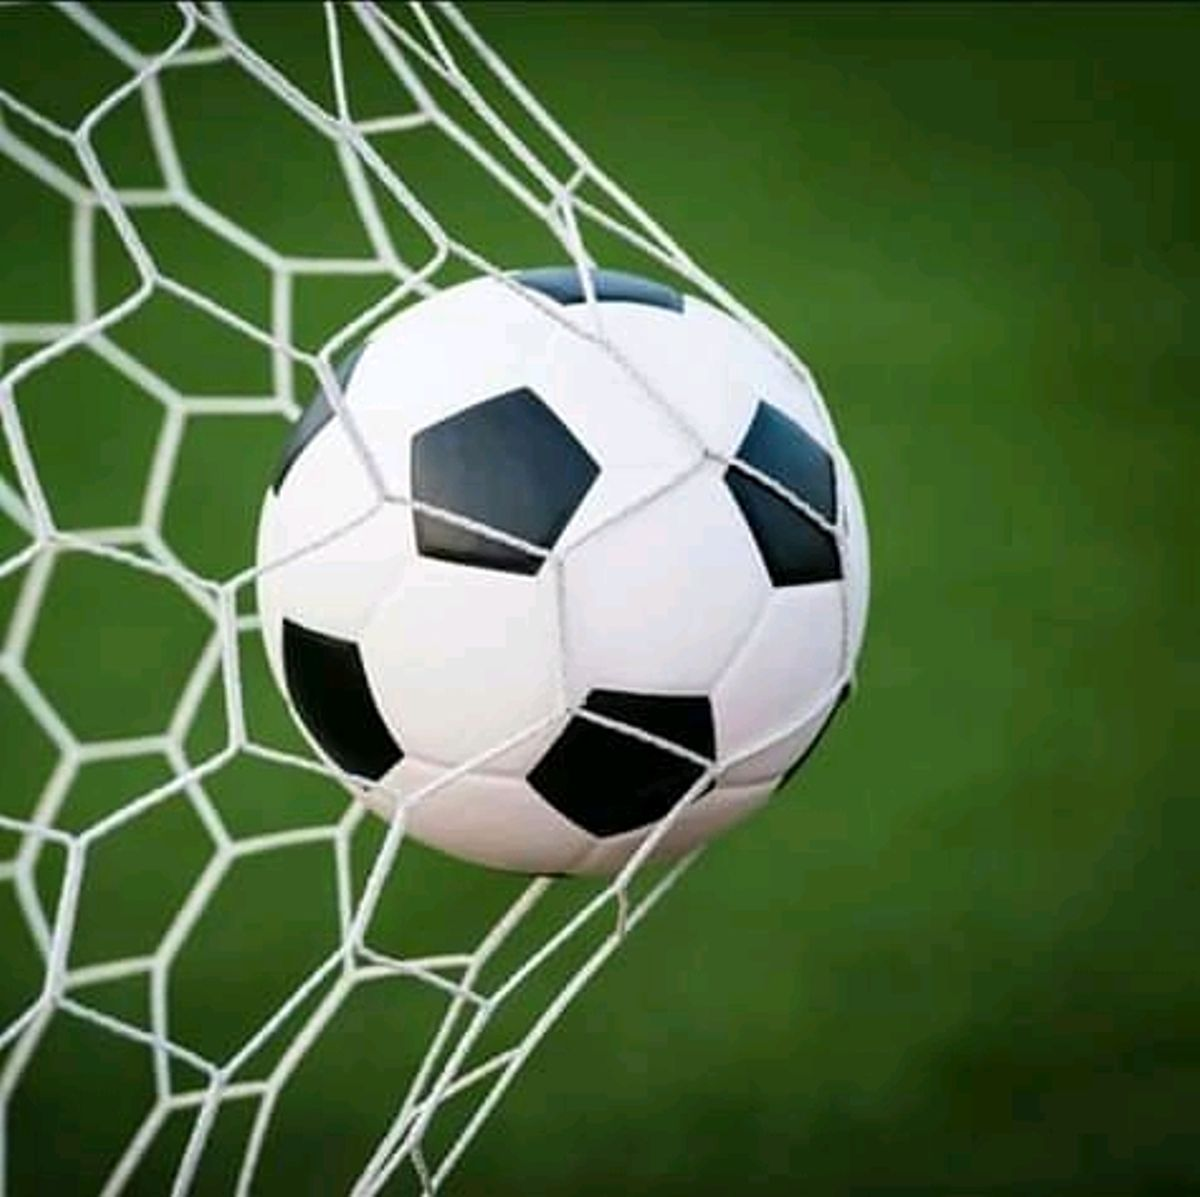 Monday super soccer tips that can earn you Sh20,000